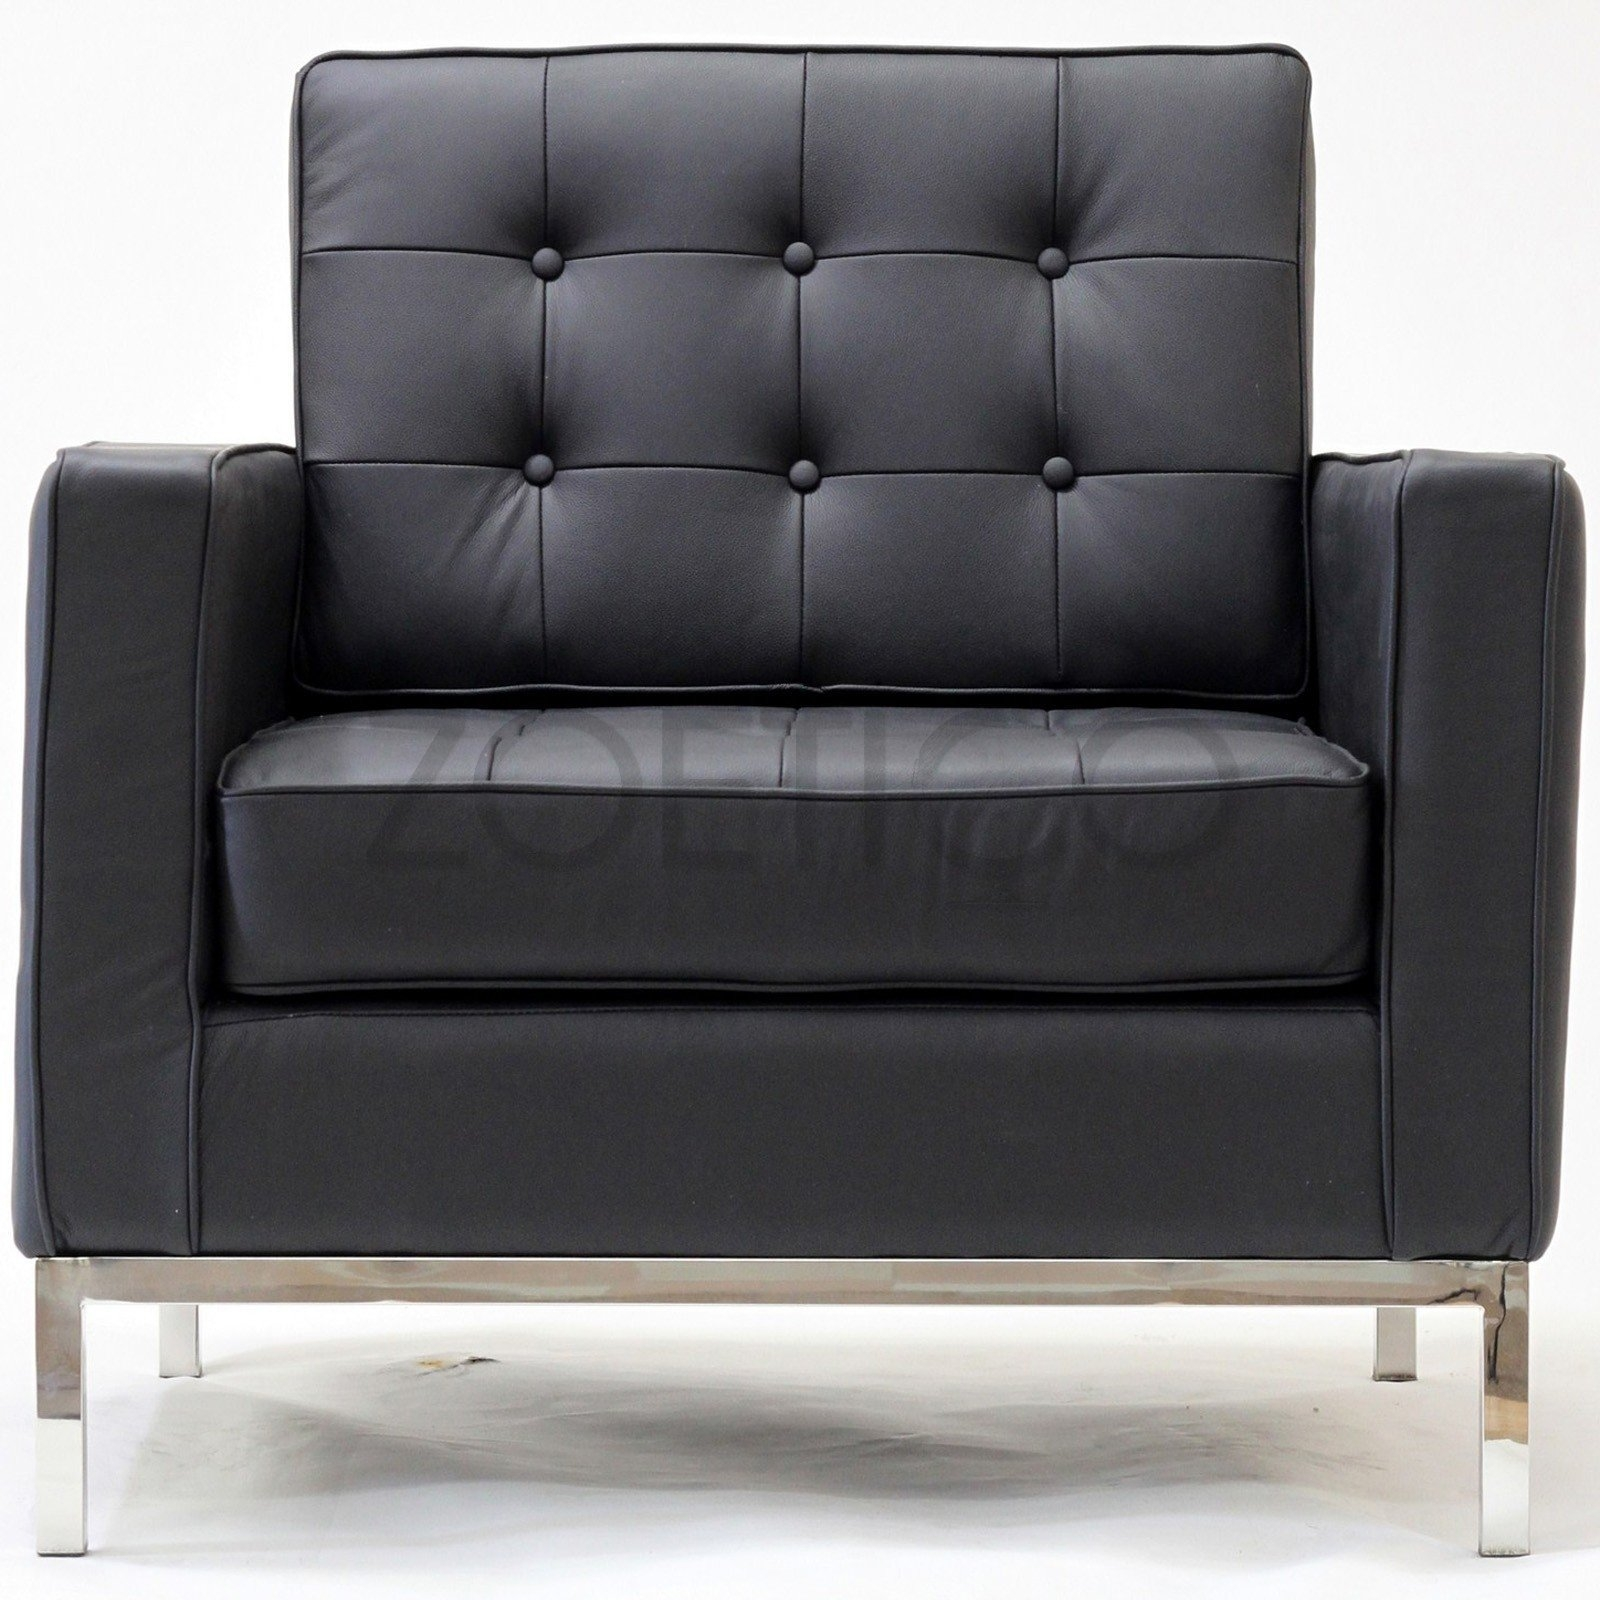 Florence Knoll Style Armchair In Leather Multiple Colors Inside Florence Knoll Style Sofas (View 7 of 15)